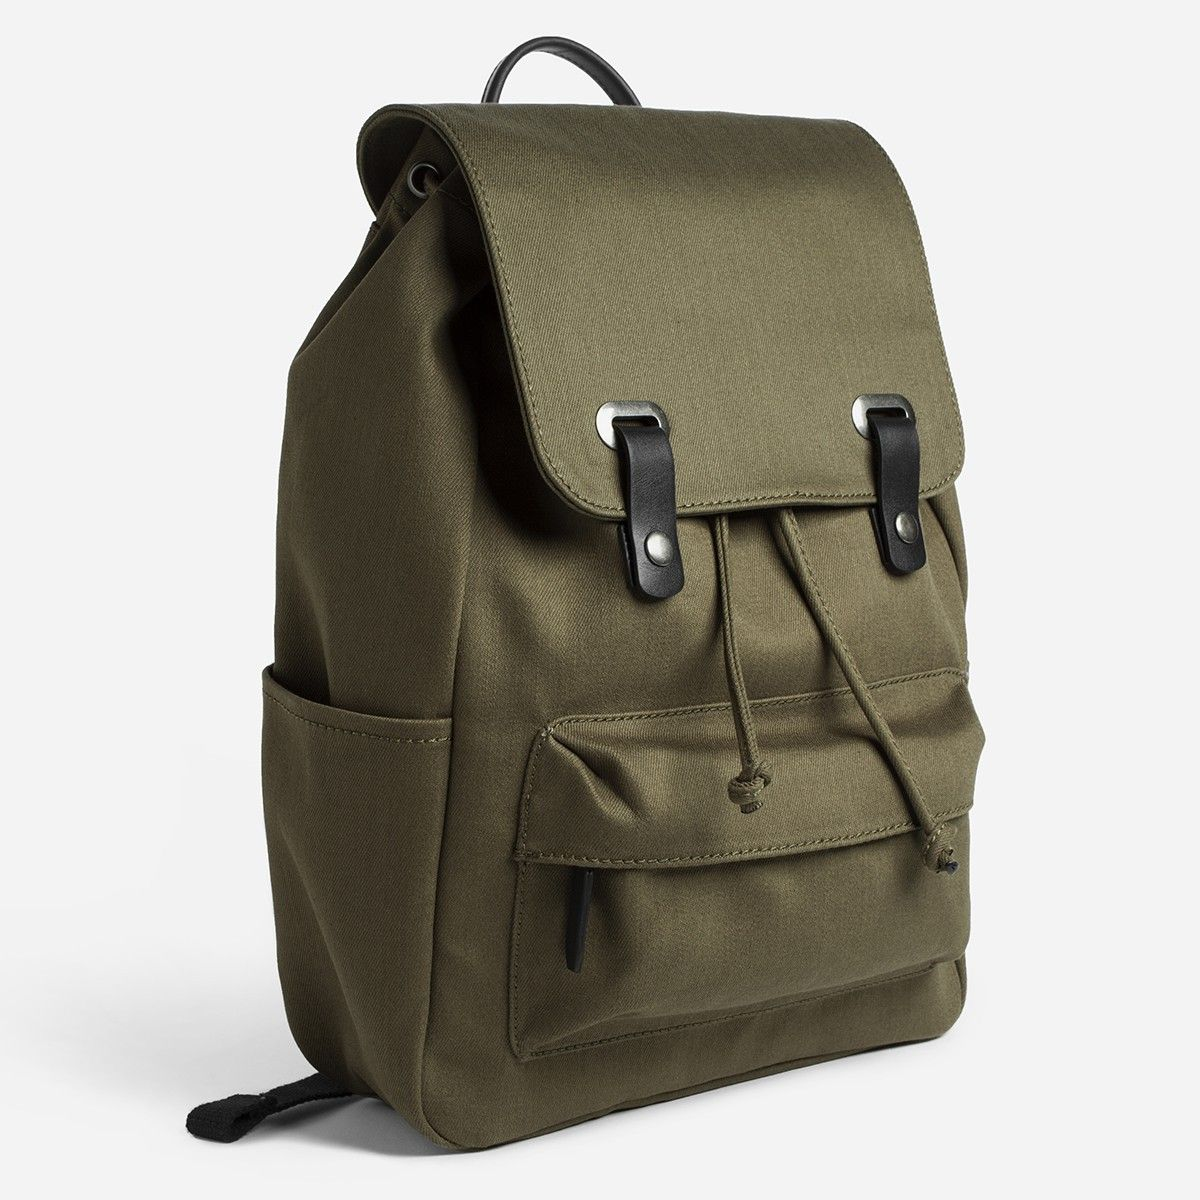 The Twill Snap Backpack - Olive + Black Leather by Everlane   Spring - Free Shipping. On Everything.